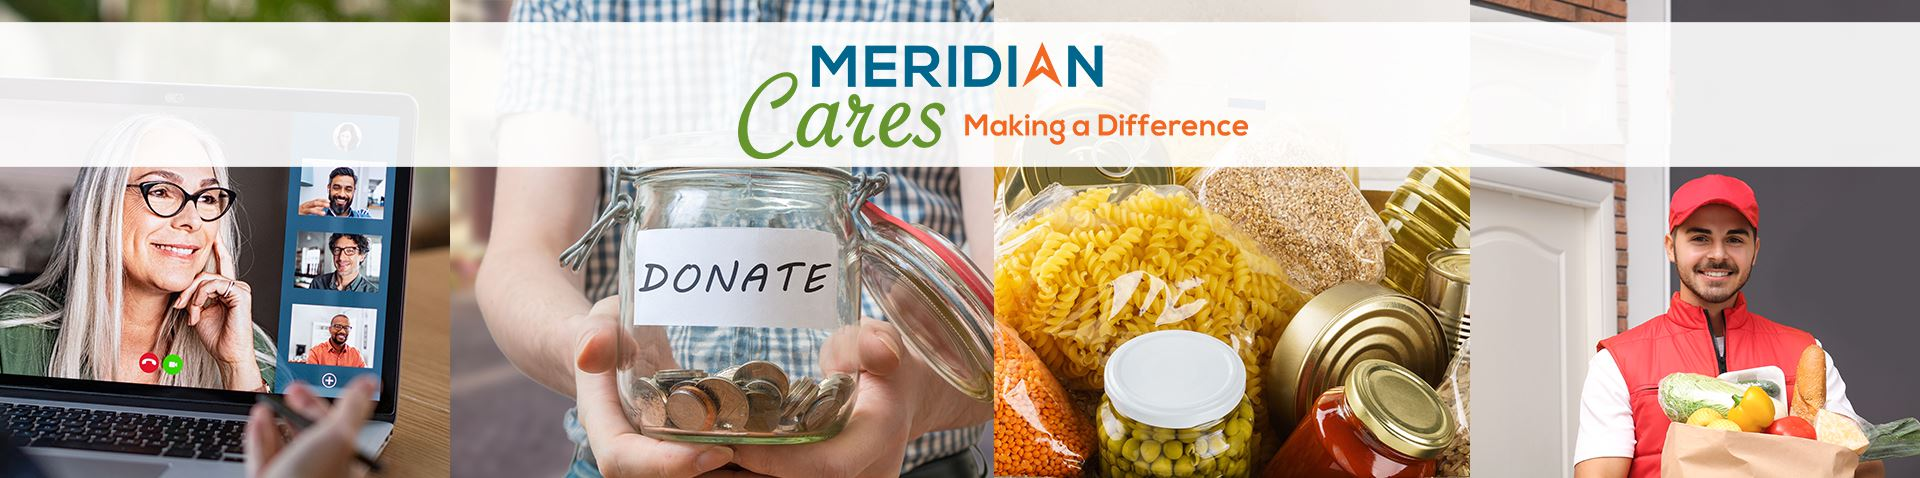 Meridian Cares Homepage Banner